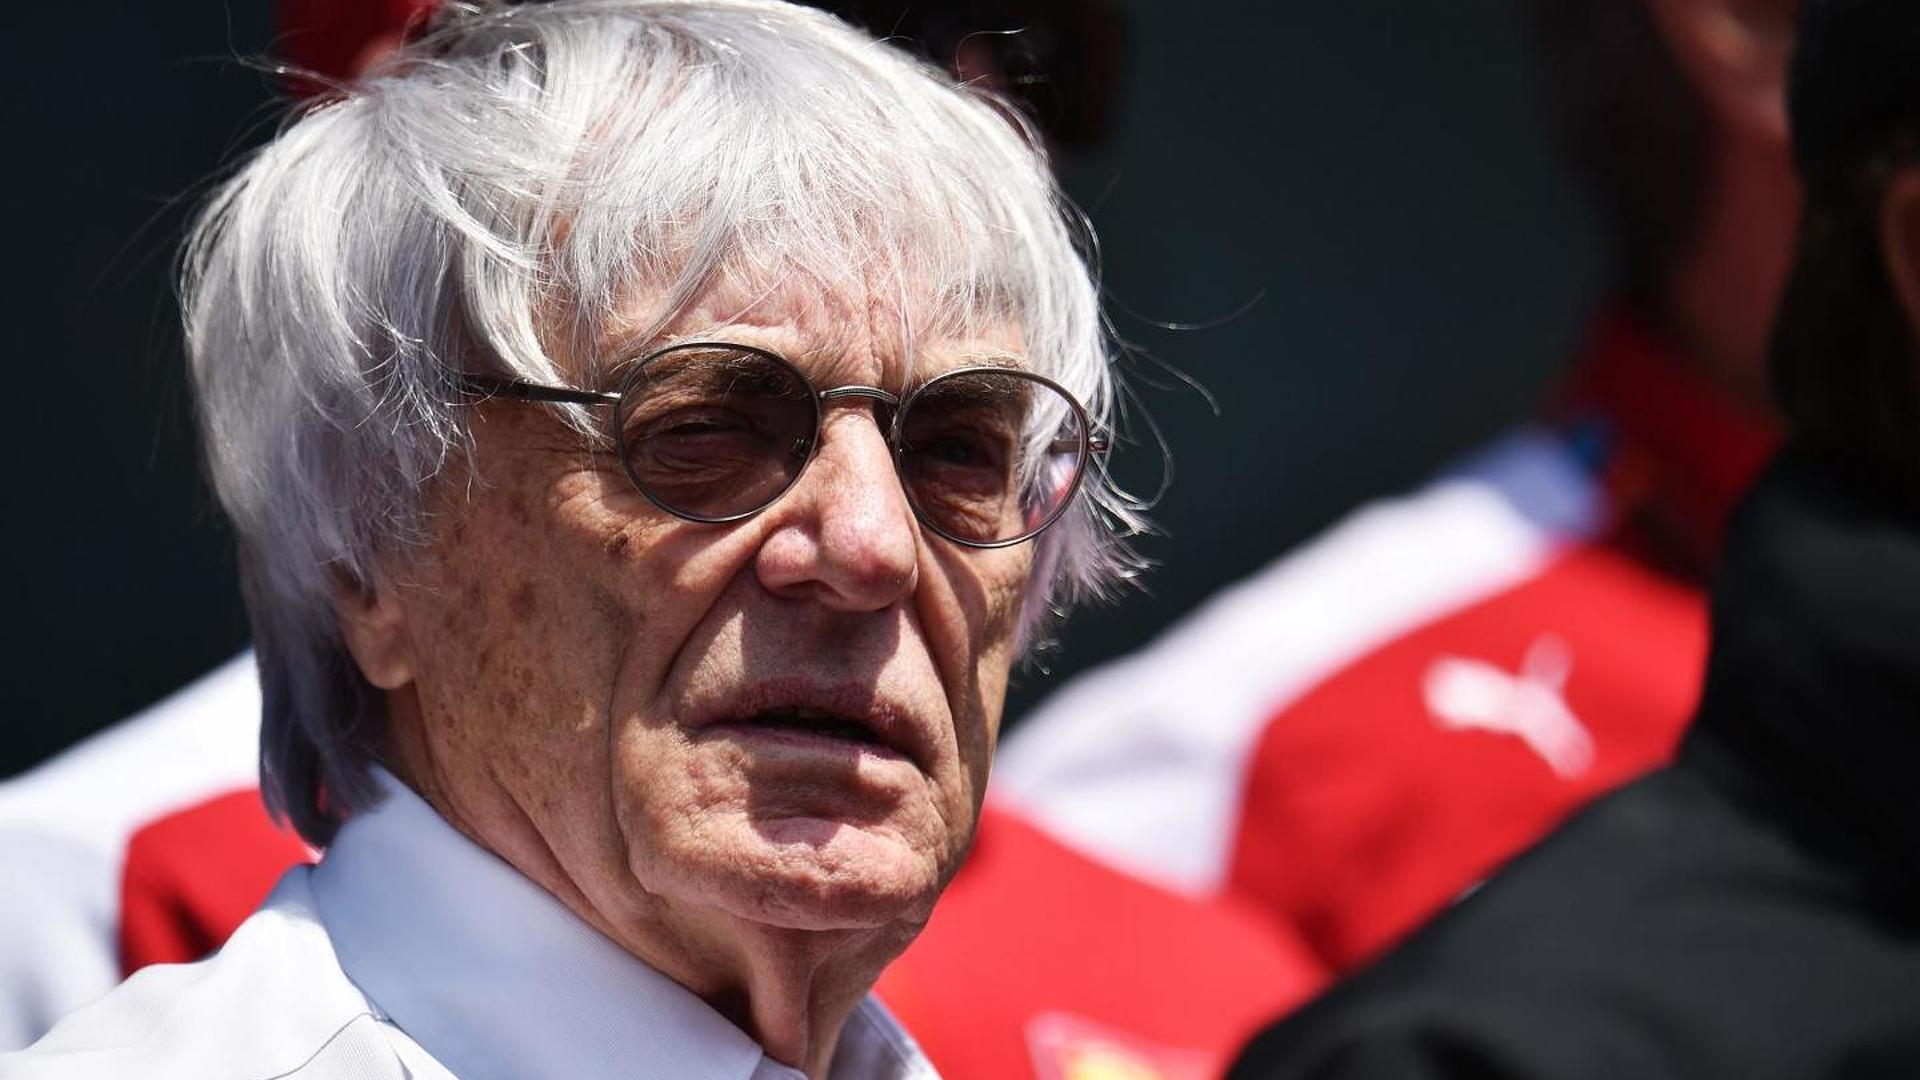 Ecclestone wants Mercedes power for entire grid